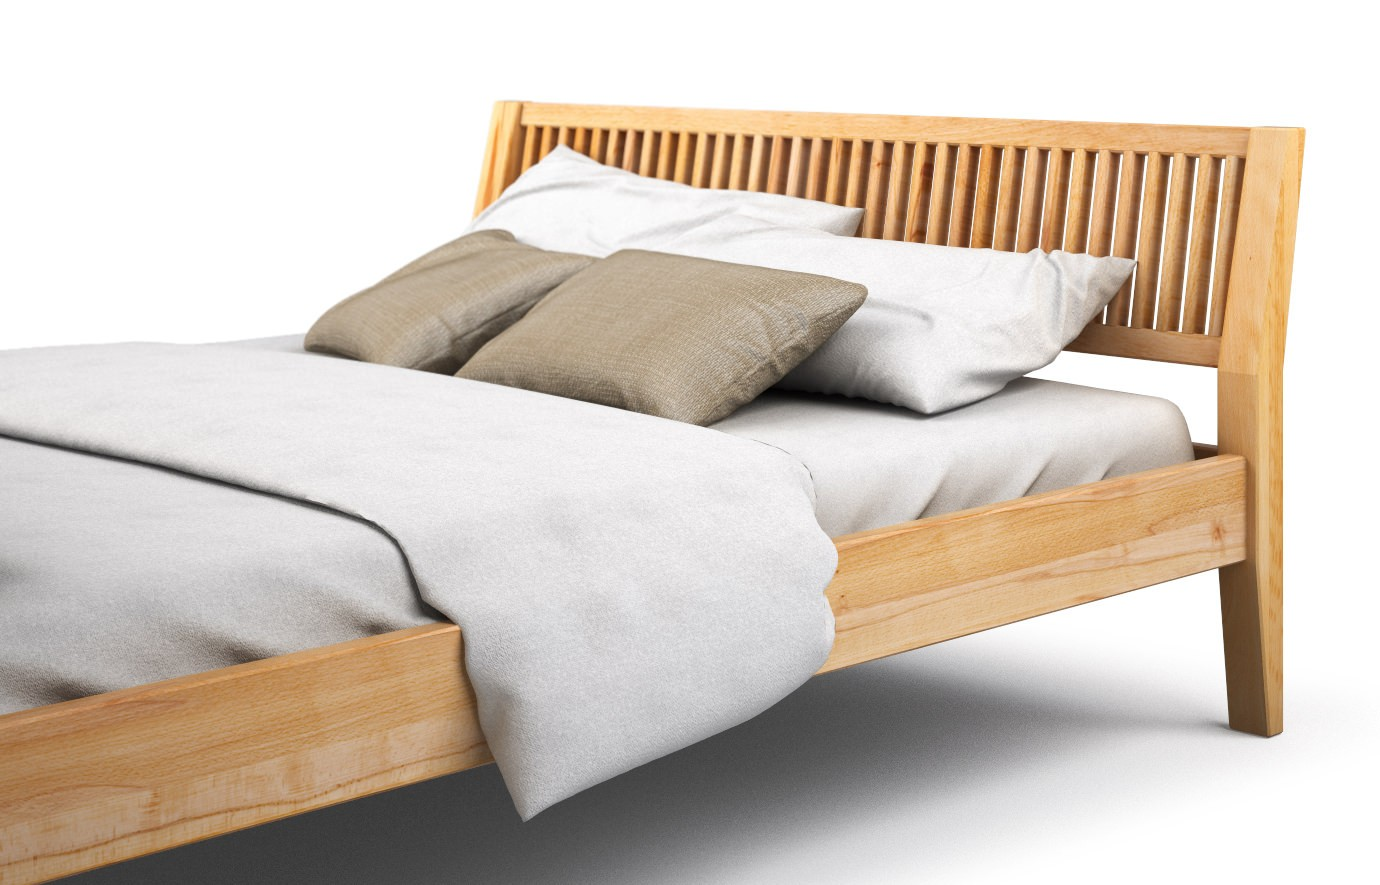 Bett Massiv Holz Bed Frame With Lights Beautiful Betten 140 Cm